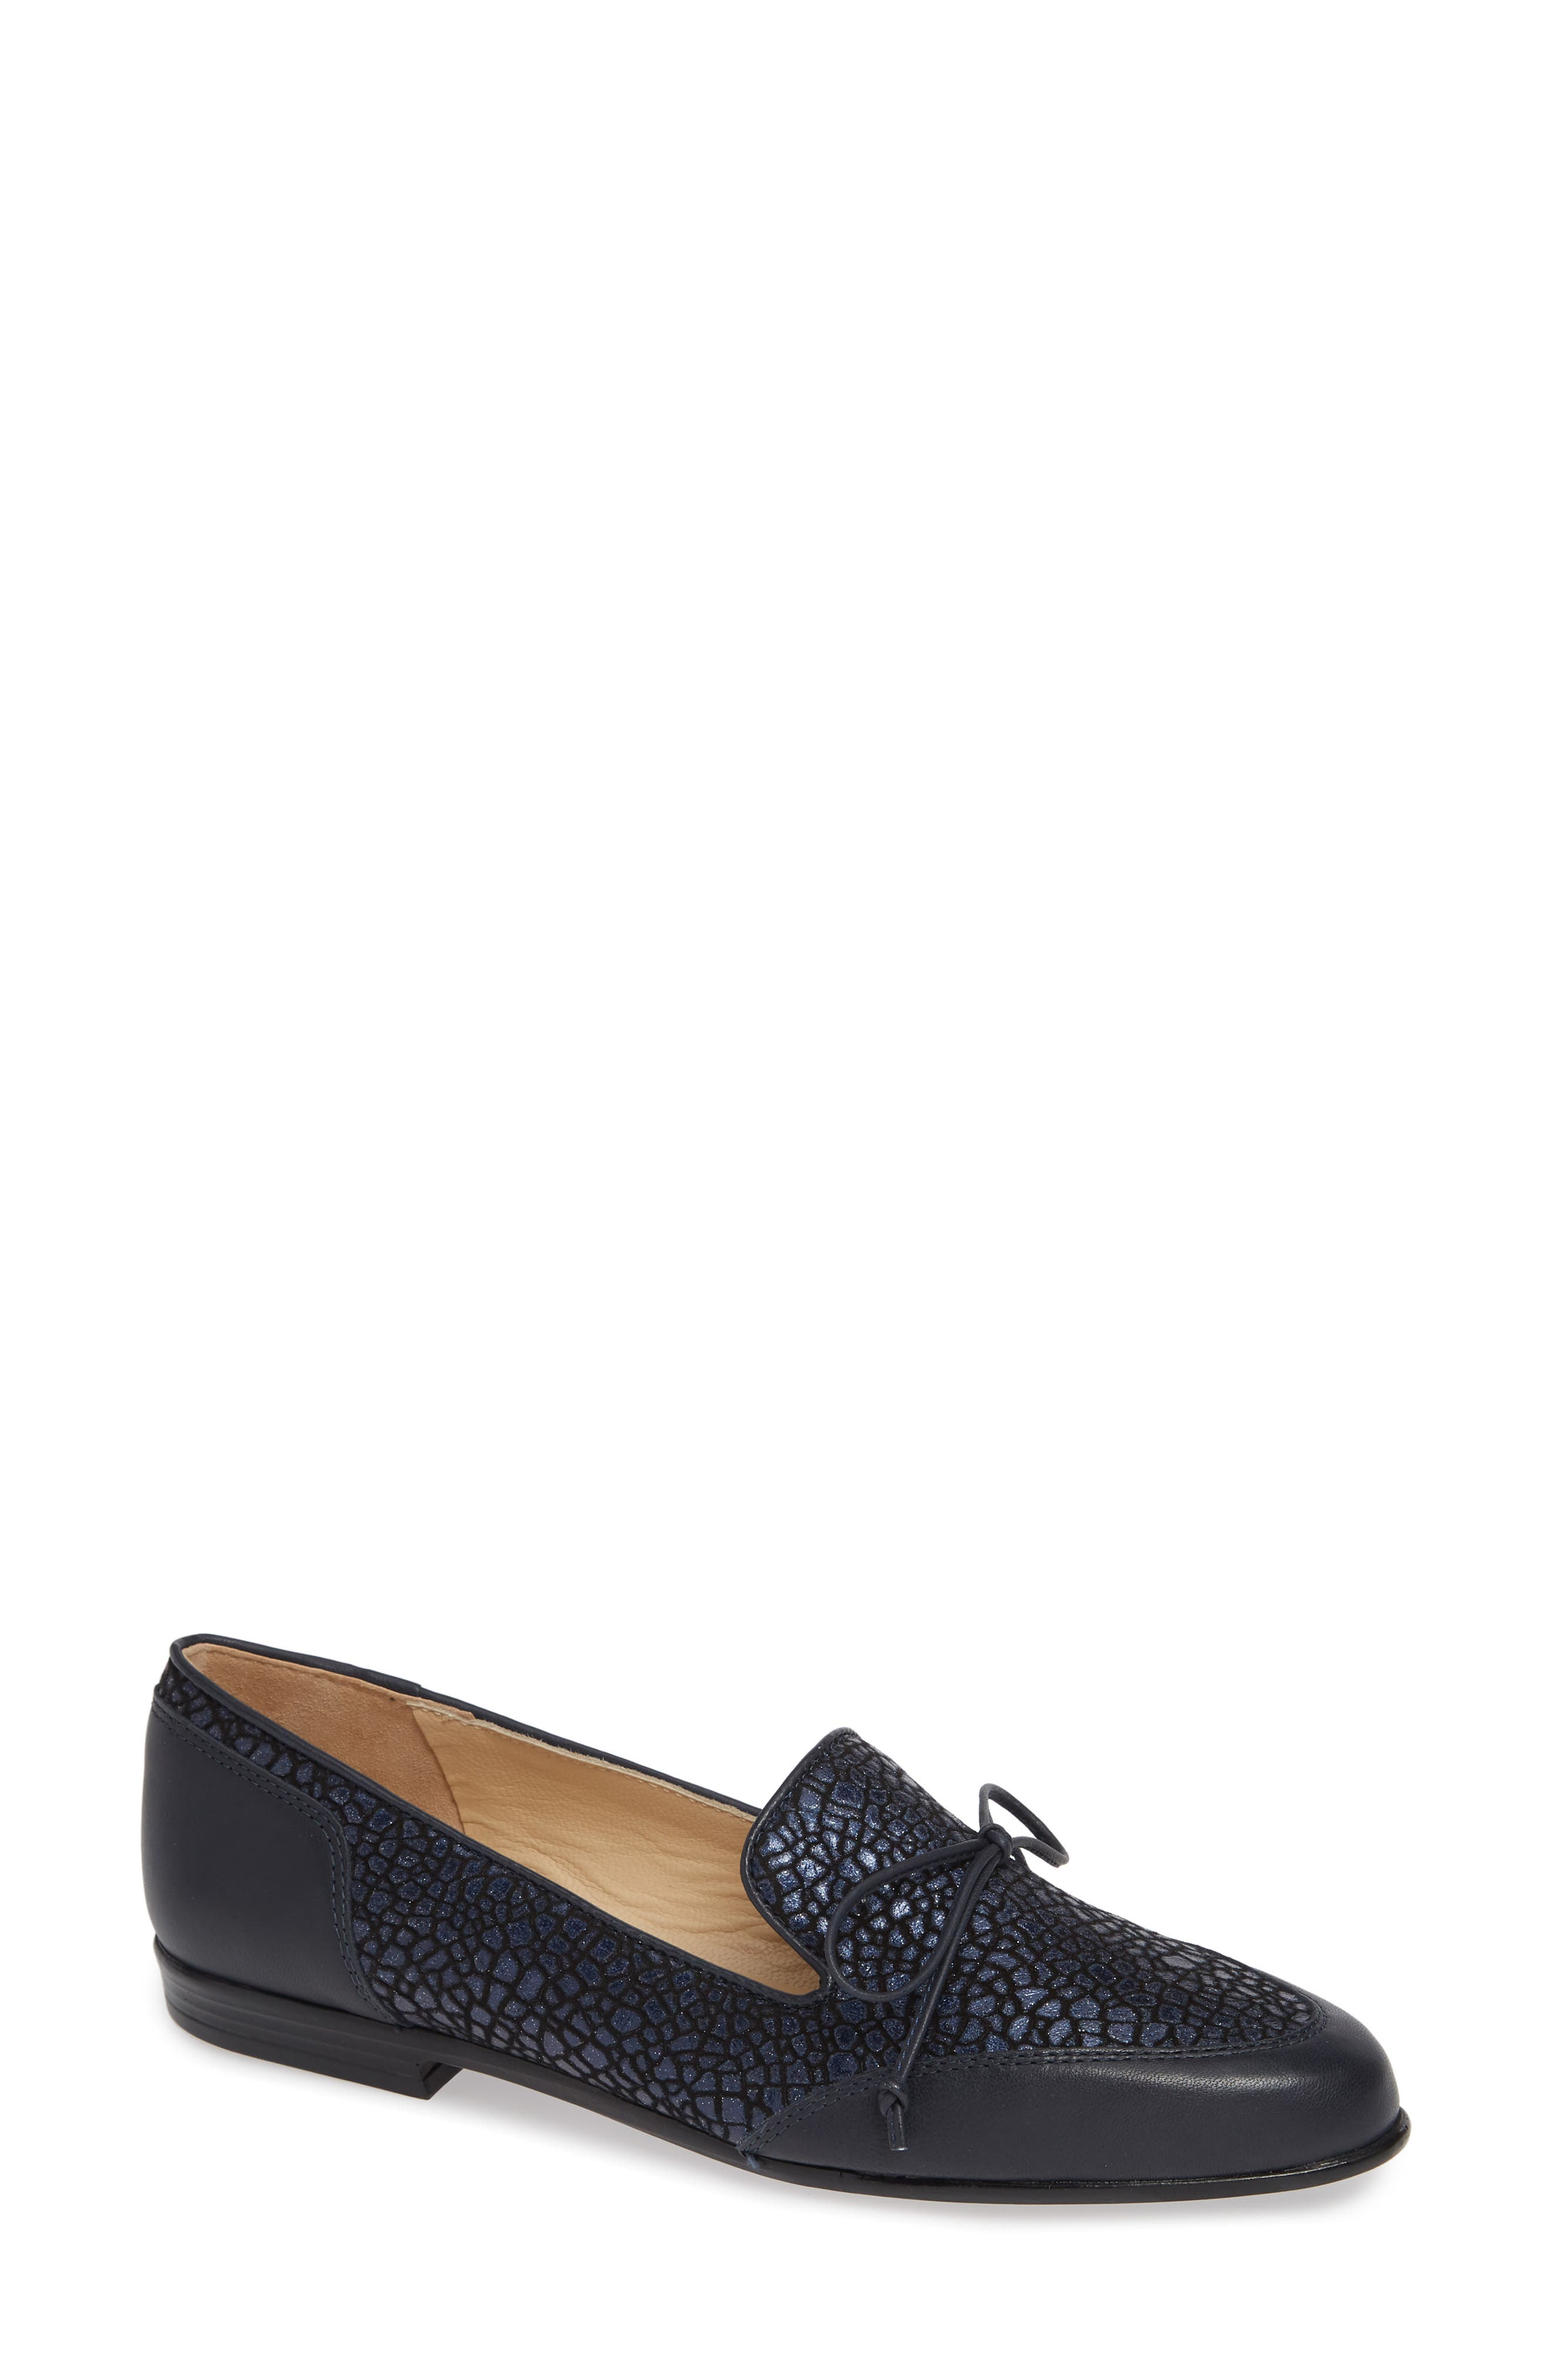 Ombretto Embossed Loafer in Navy Leather